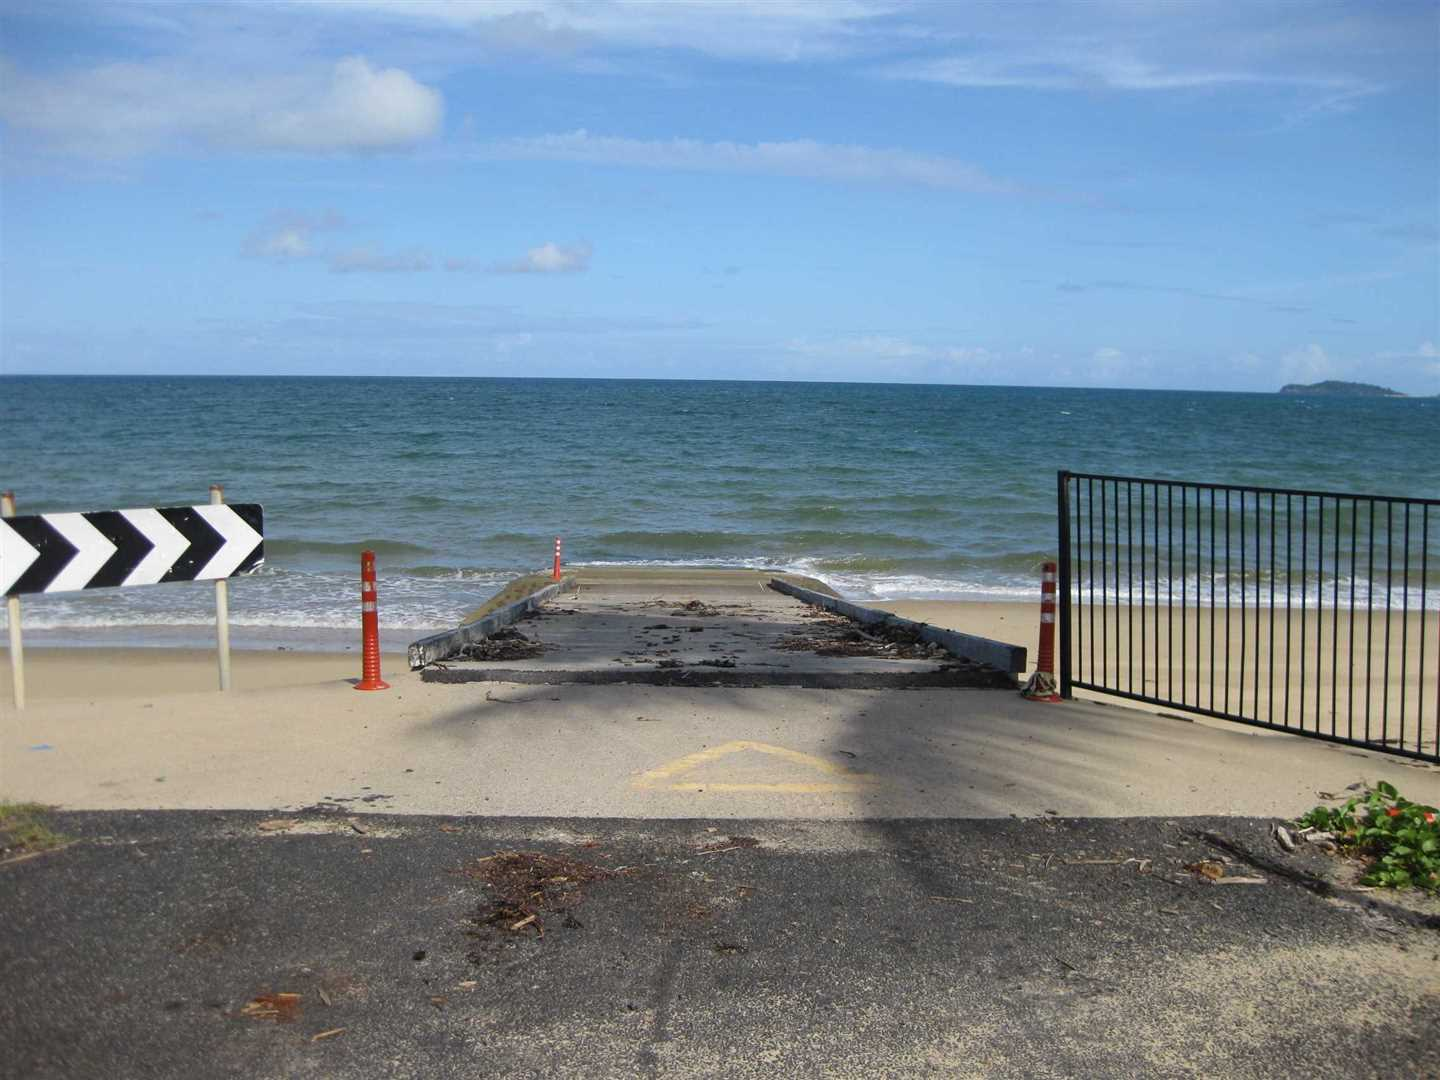 View of tidal public boat ramp at Cowley Beach